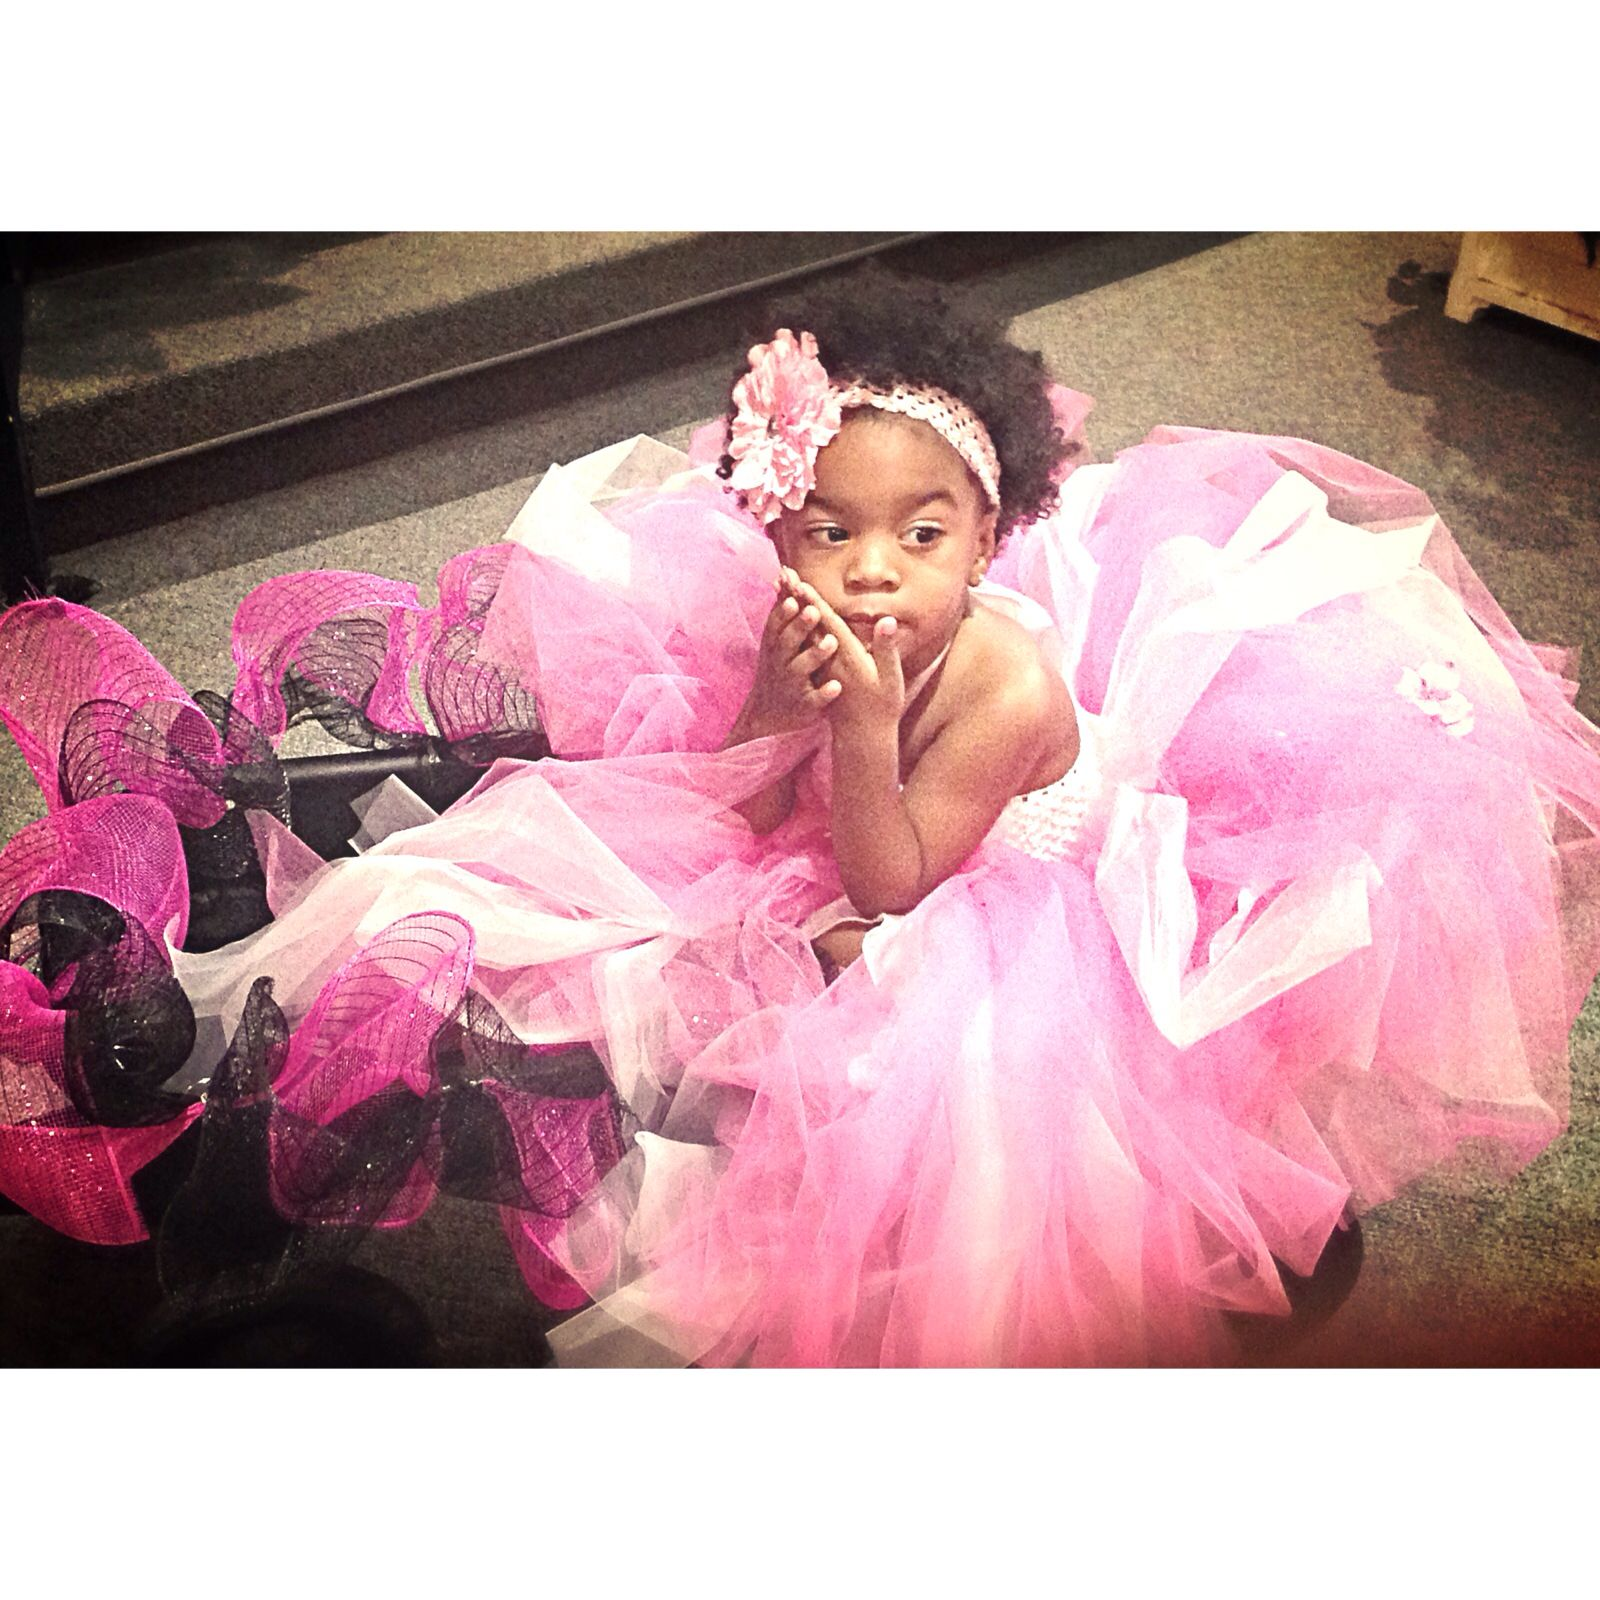 Pretty Little Flower Girl Riding In The Wagon Tutu For Days